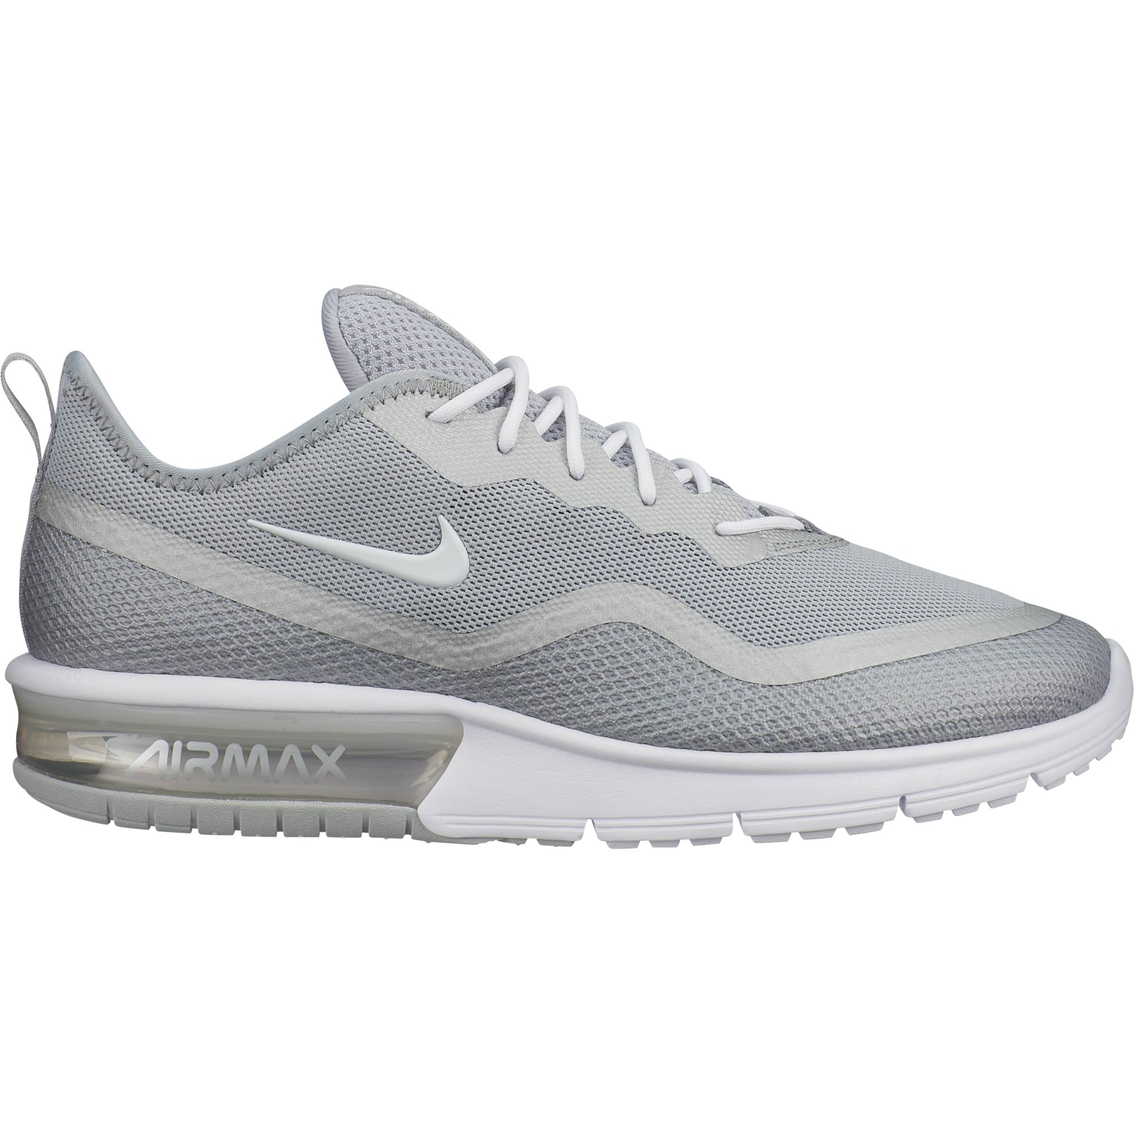 Nike Men's Air Max Sequent Running Shoes | Running | Shoes